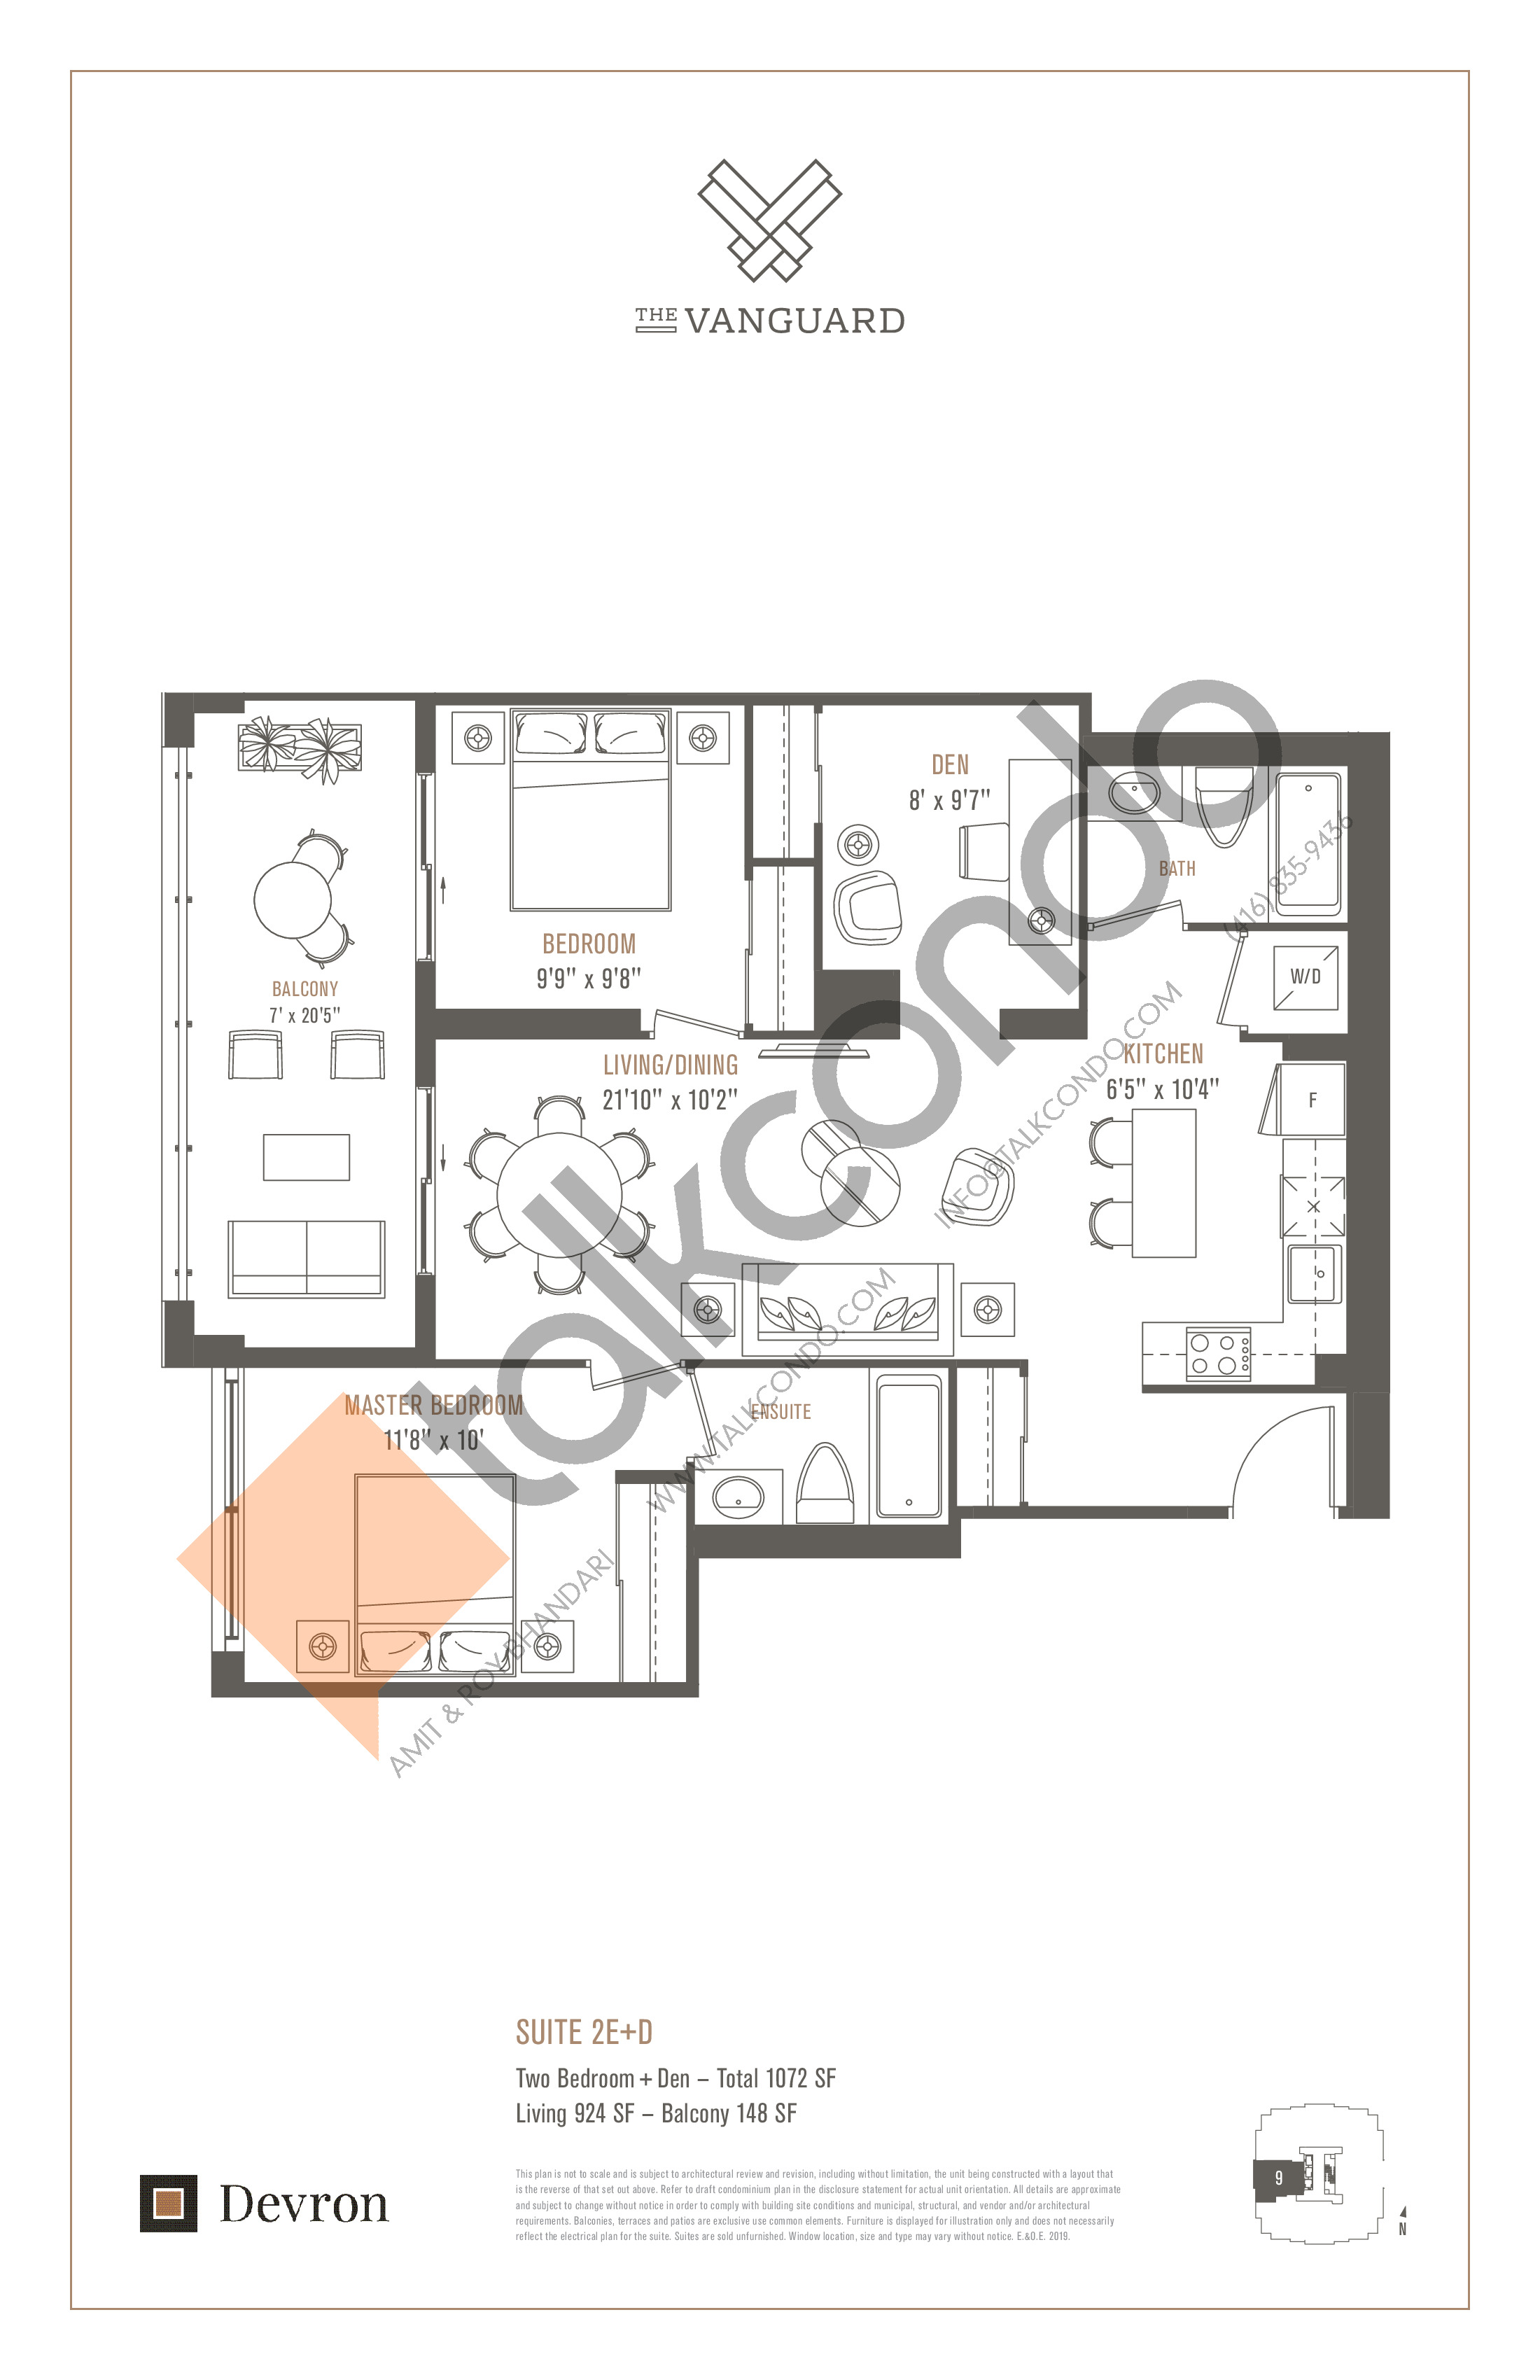 Suite 2E+D Floor Plan at The Vanguard - 924 sq.ft